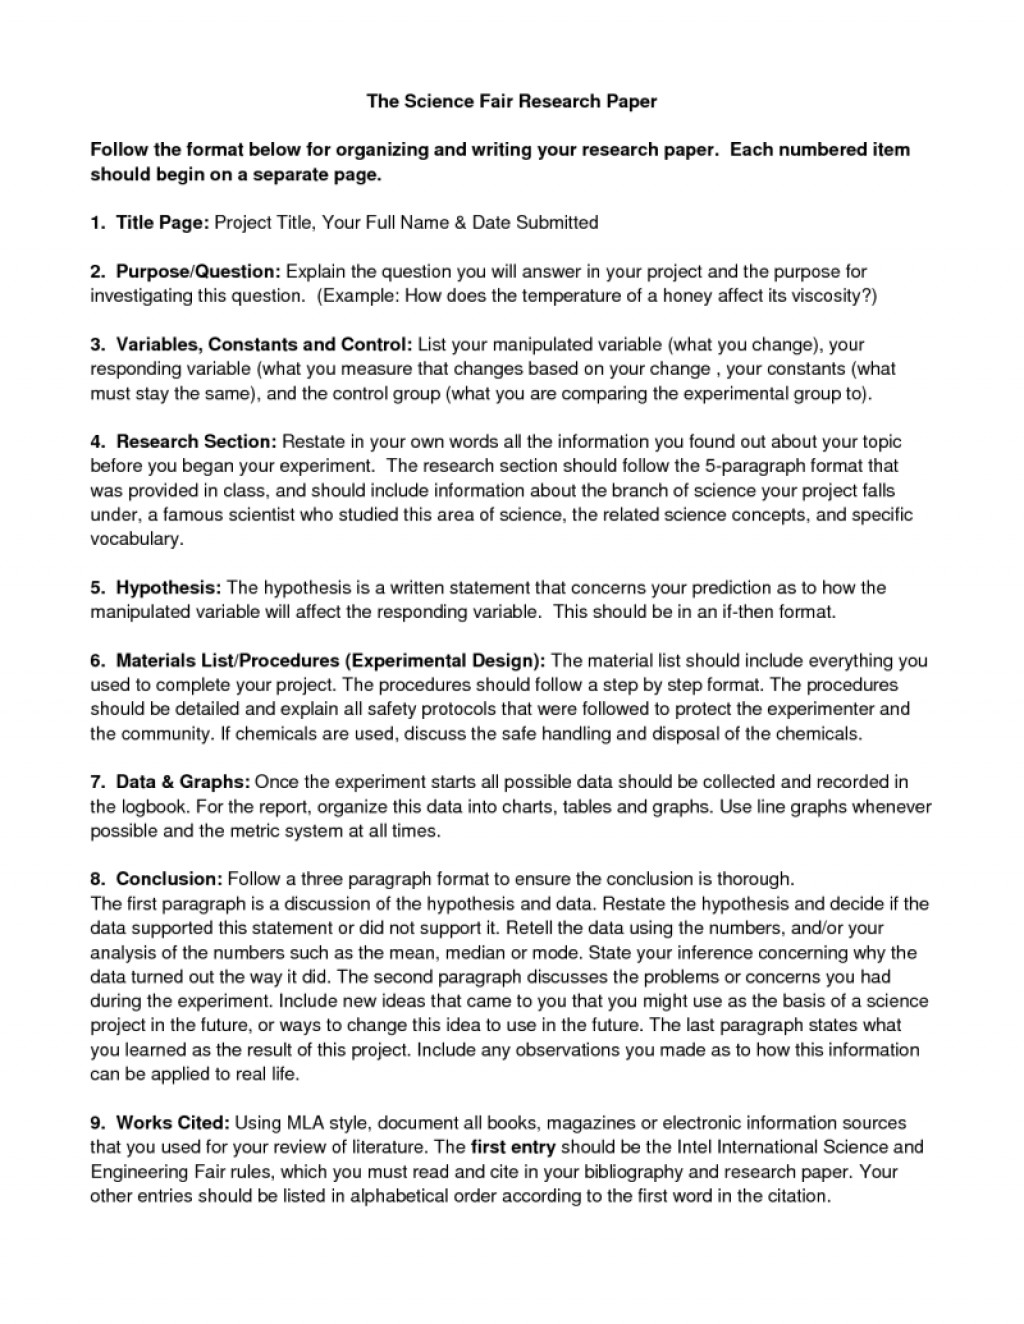 010 Research Paper Best Websites For Engineering Papers Ideas Of Science Fair Outline Unique Politicalnes Wondrous Large